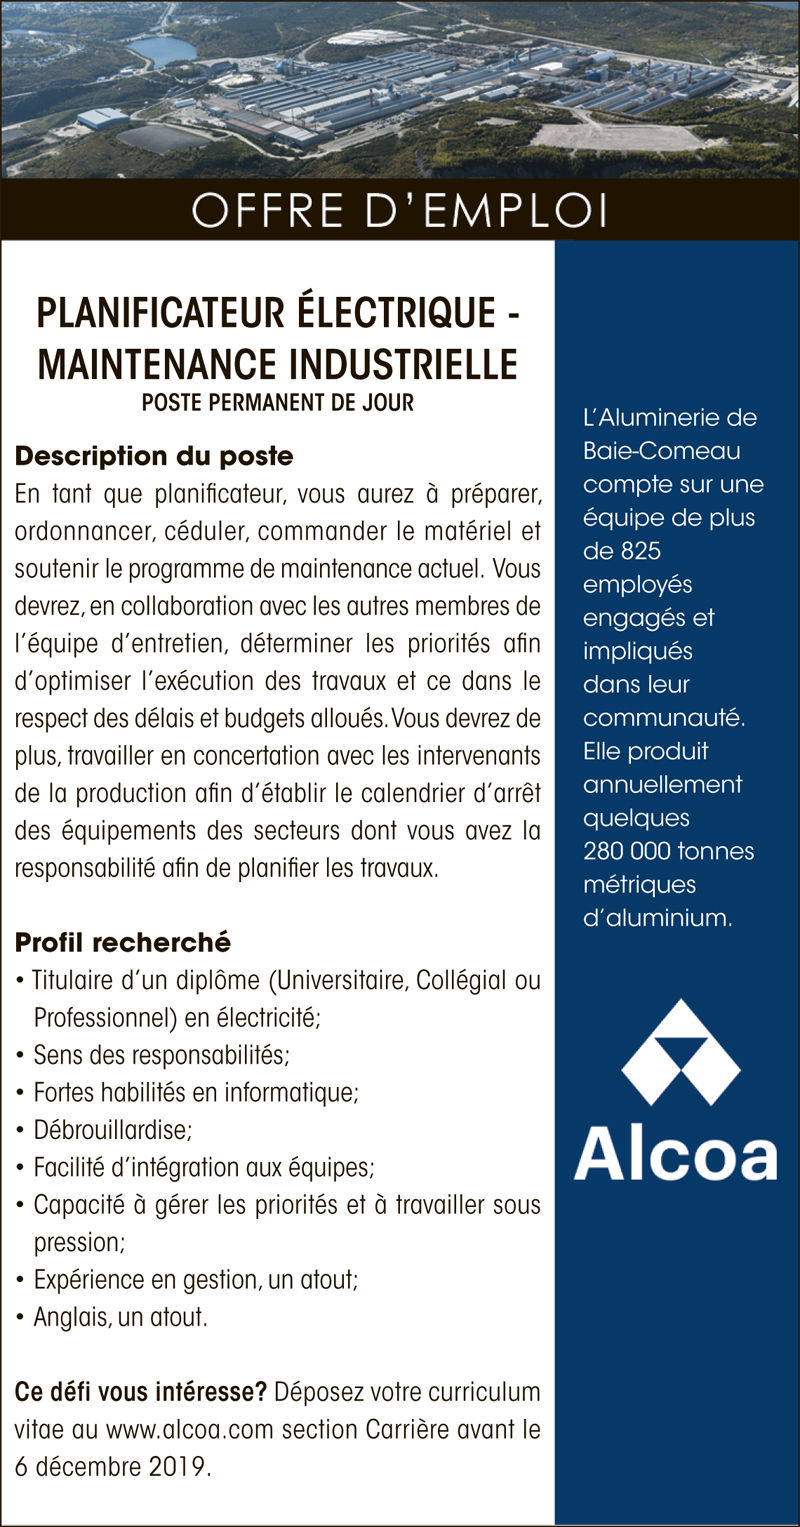 Planificateur Électrique – maintenance industrielle